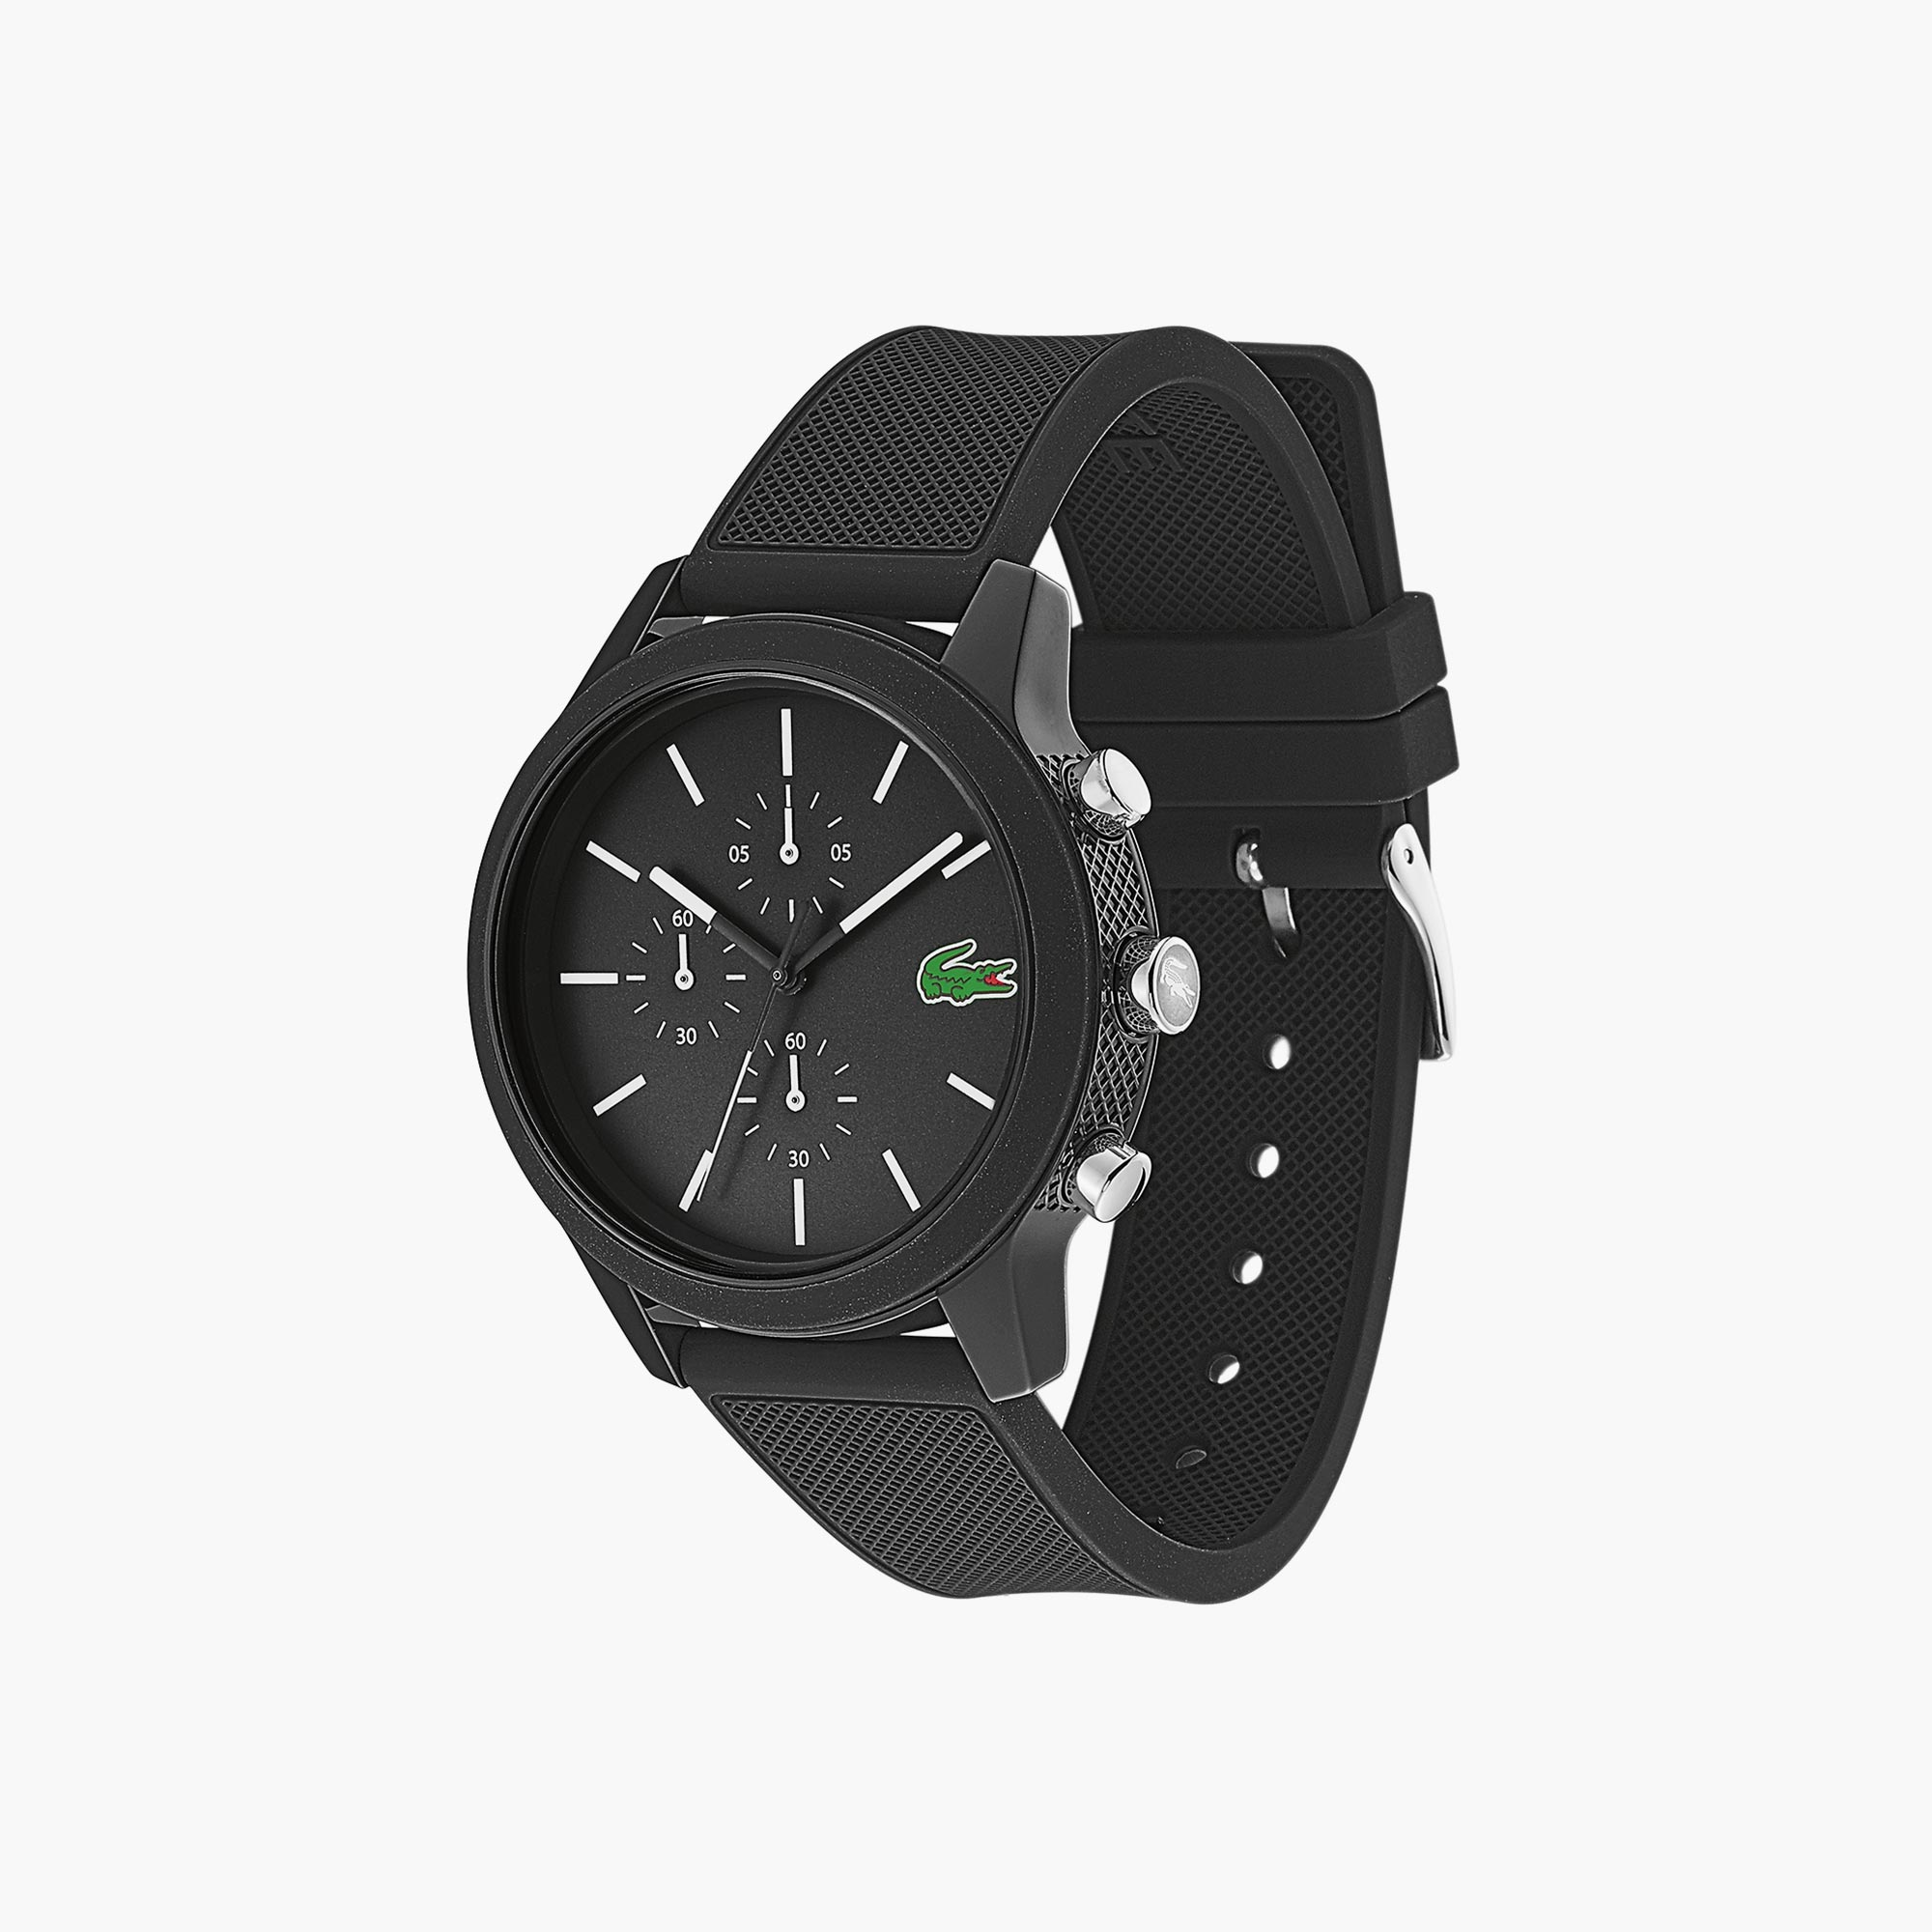 라코스테 크로노그래프 시계 Mens Lacoste 12.12 Chronograph Watch with Black Silicone Strap,Black